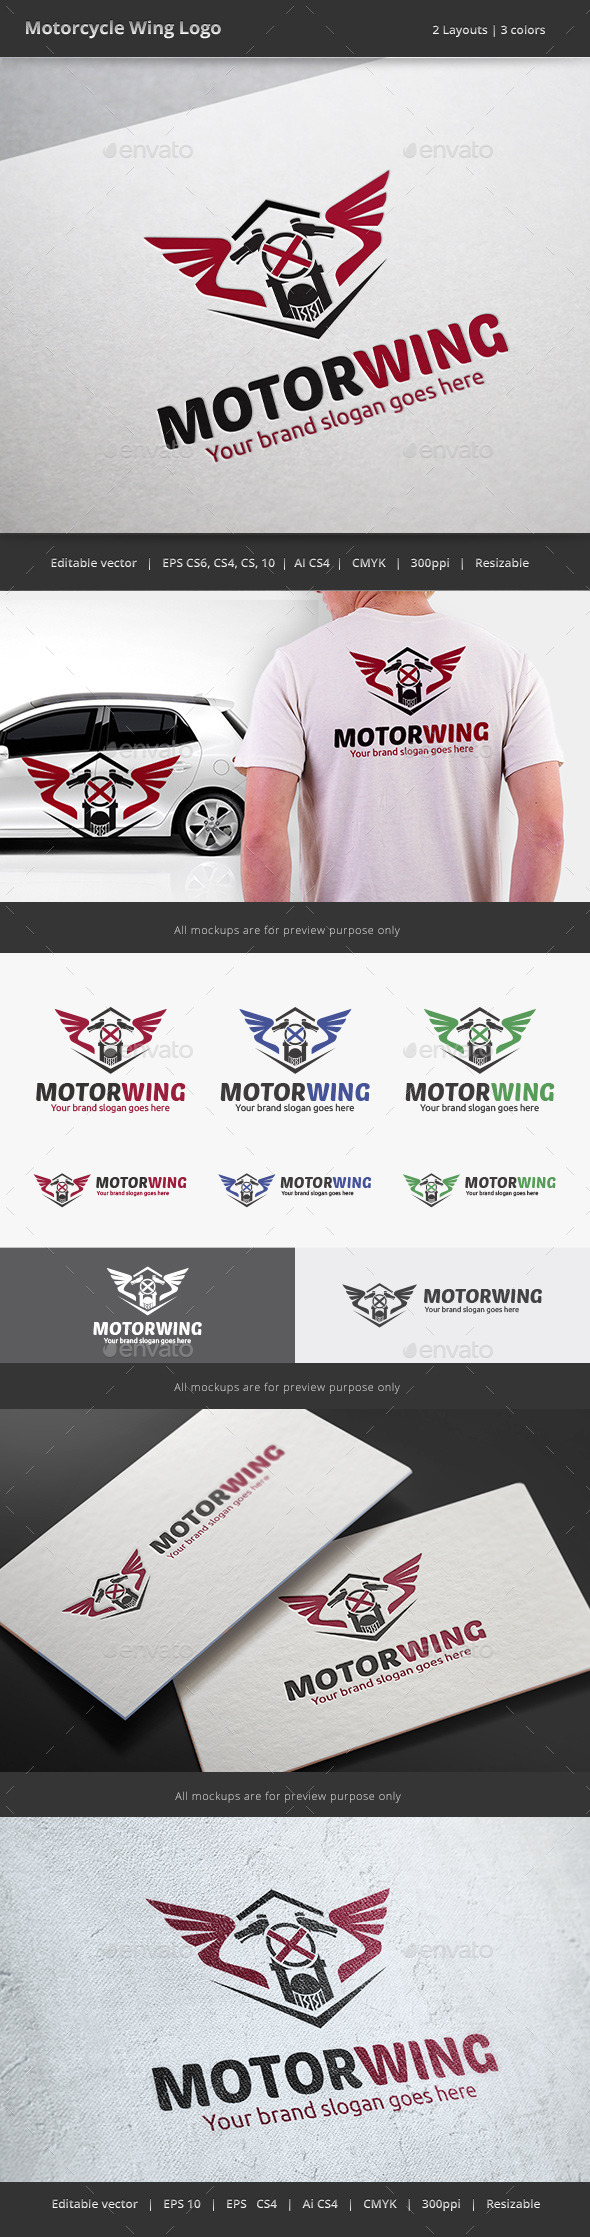 Motorcycle Wing Logo - Objects Logo Templates